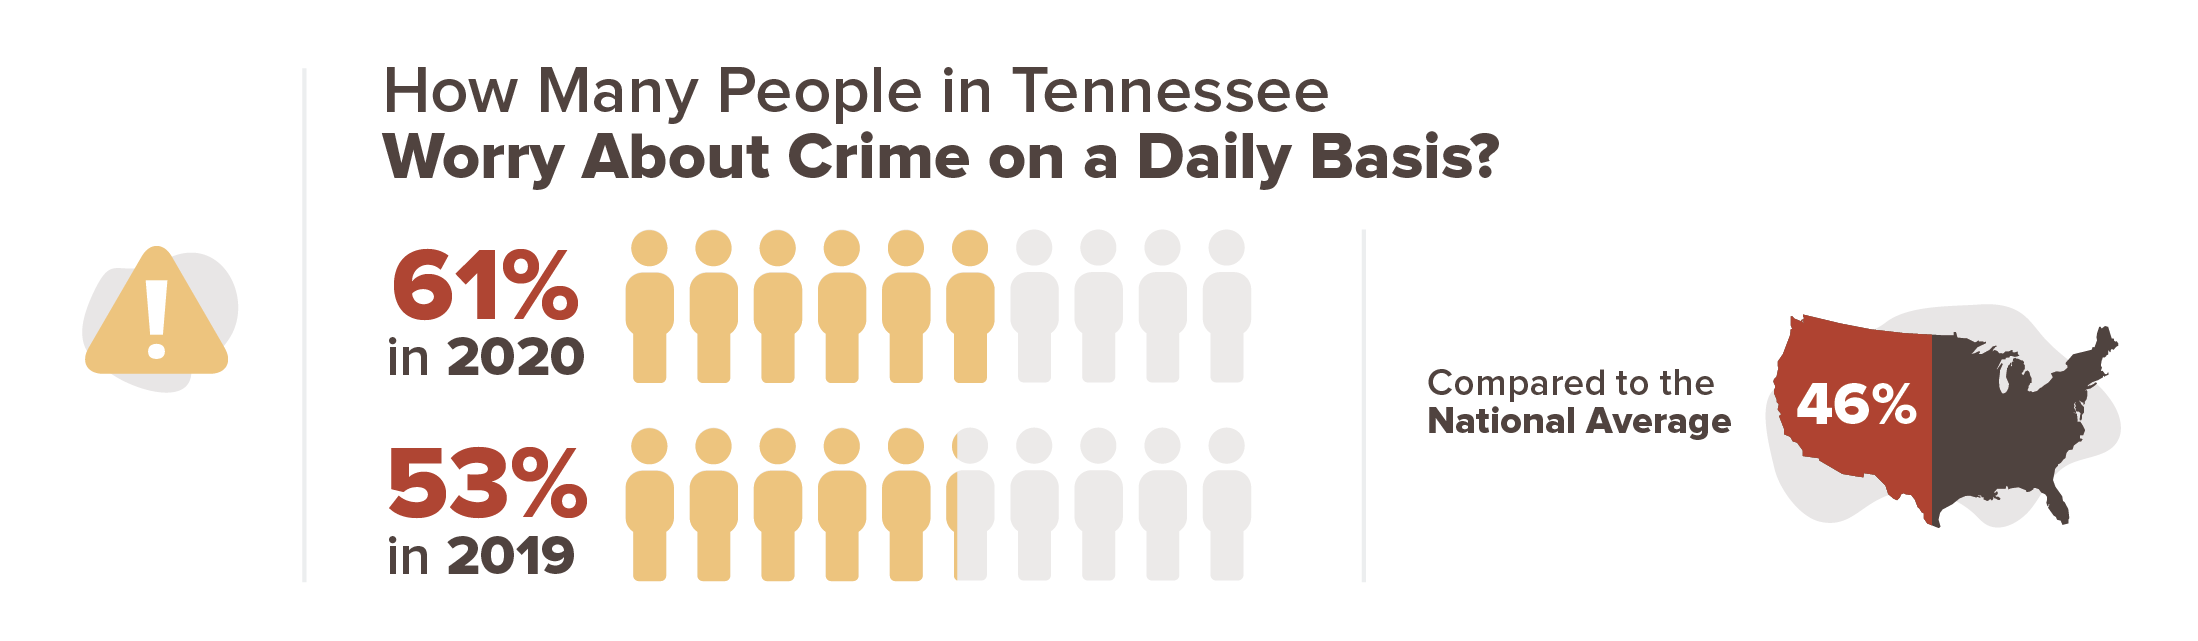 61 percent worry about crime on a daily basis